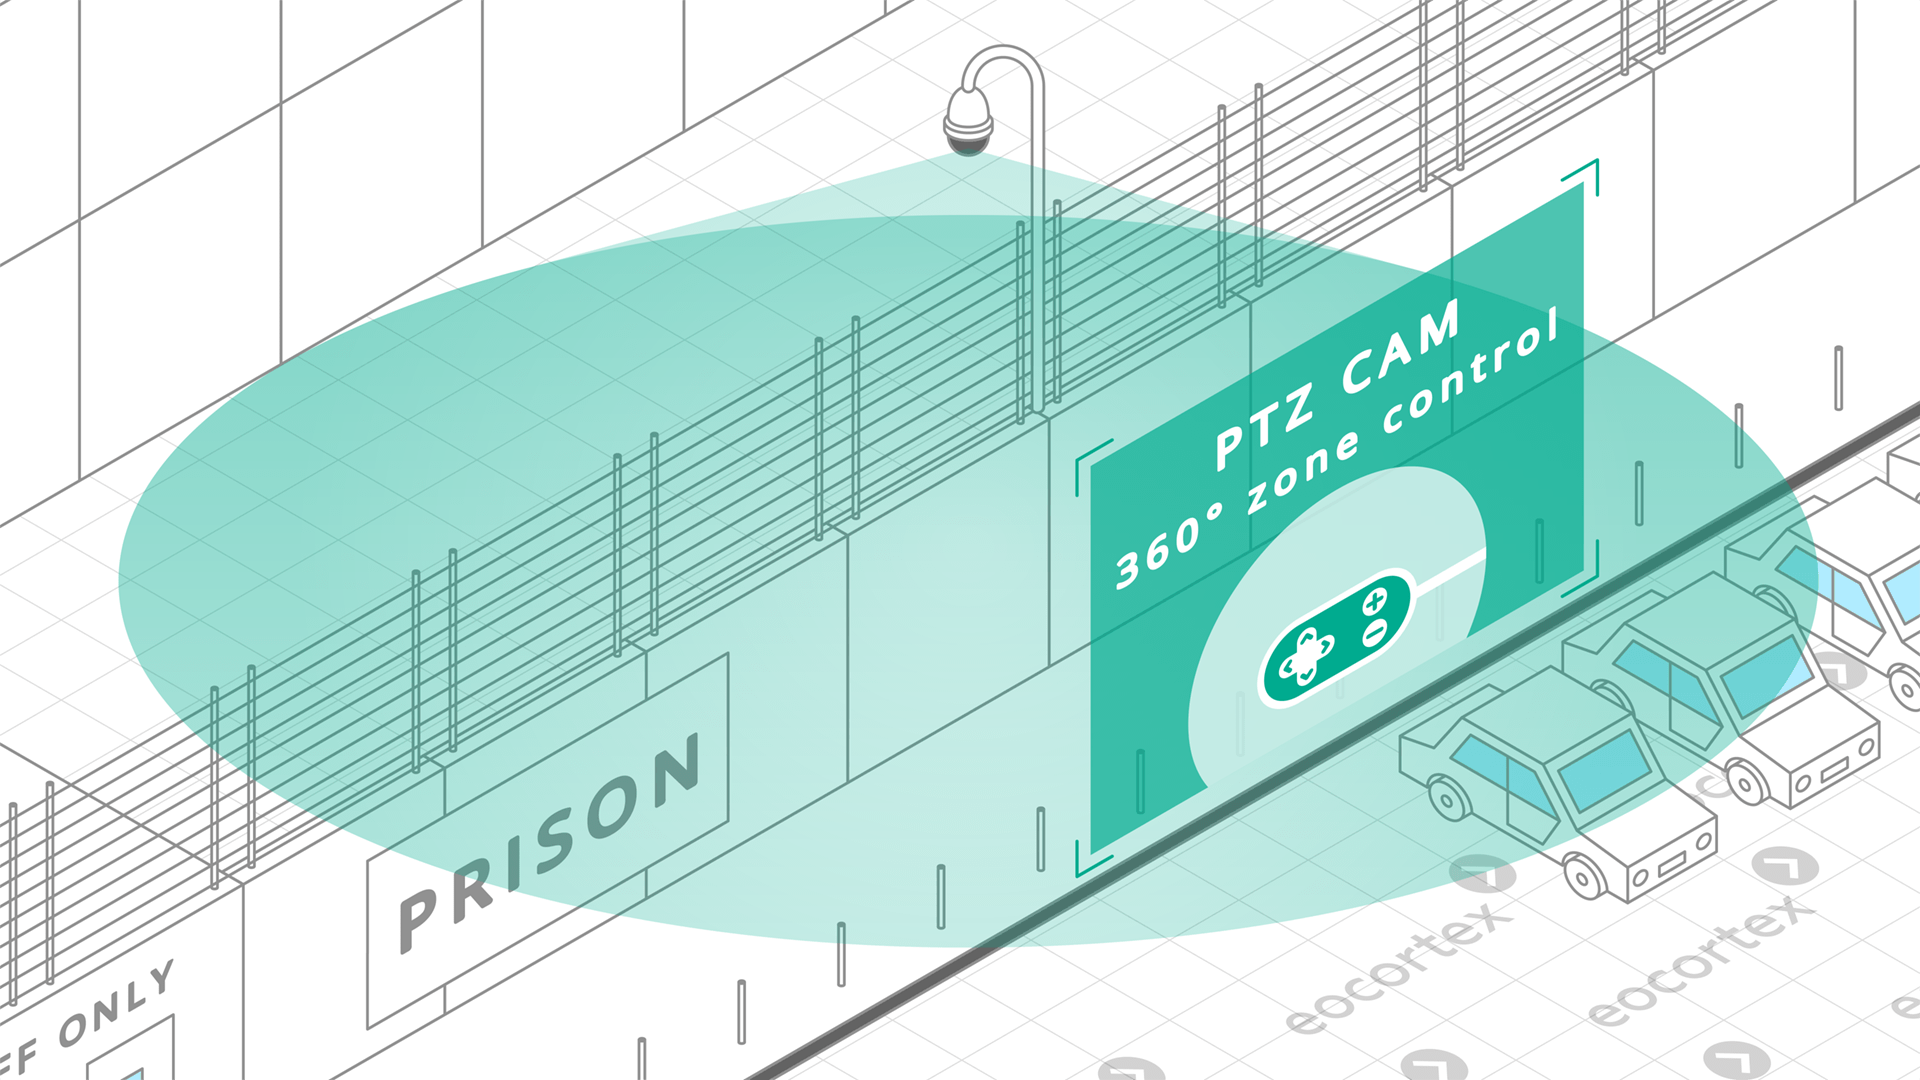 Showcasing of PTZ Camera Control for prisons & correctional facilities. CCTV surveillance system operates on the basis of the Eocortex Video Management Software.